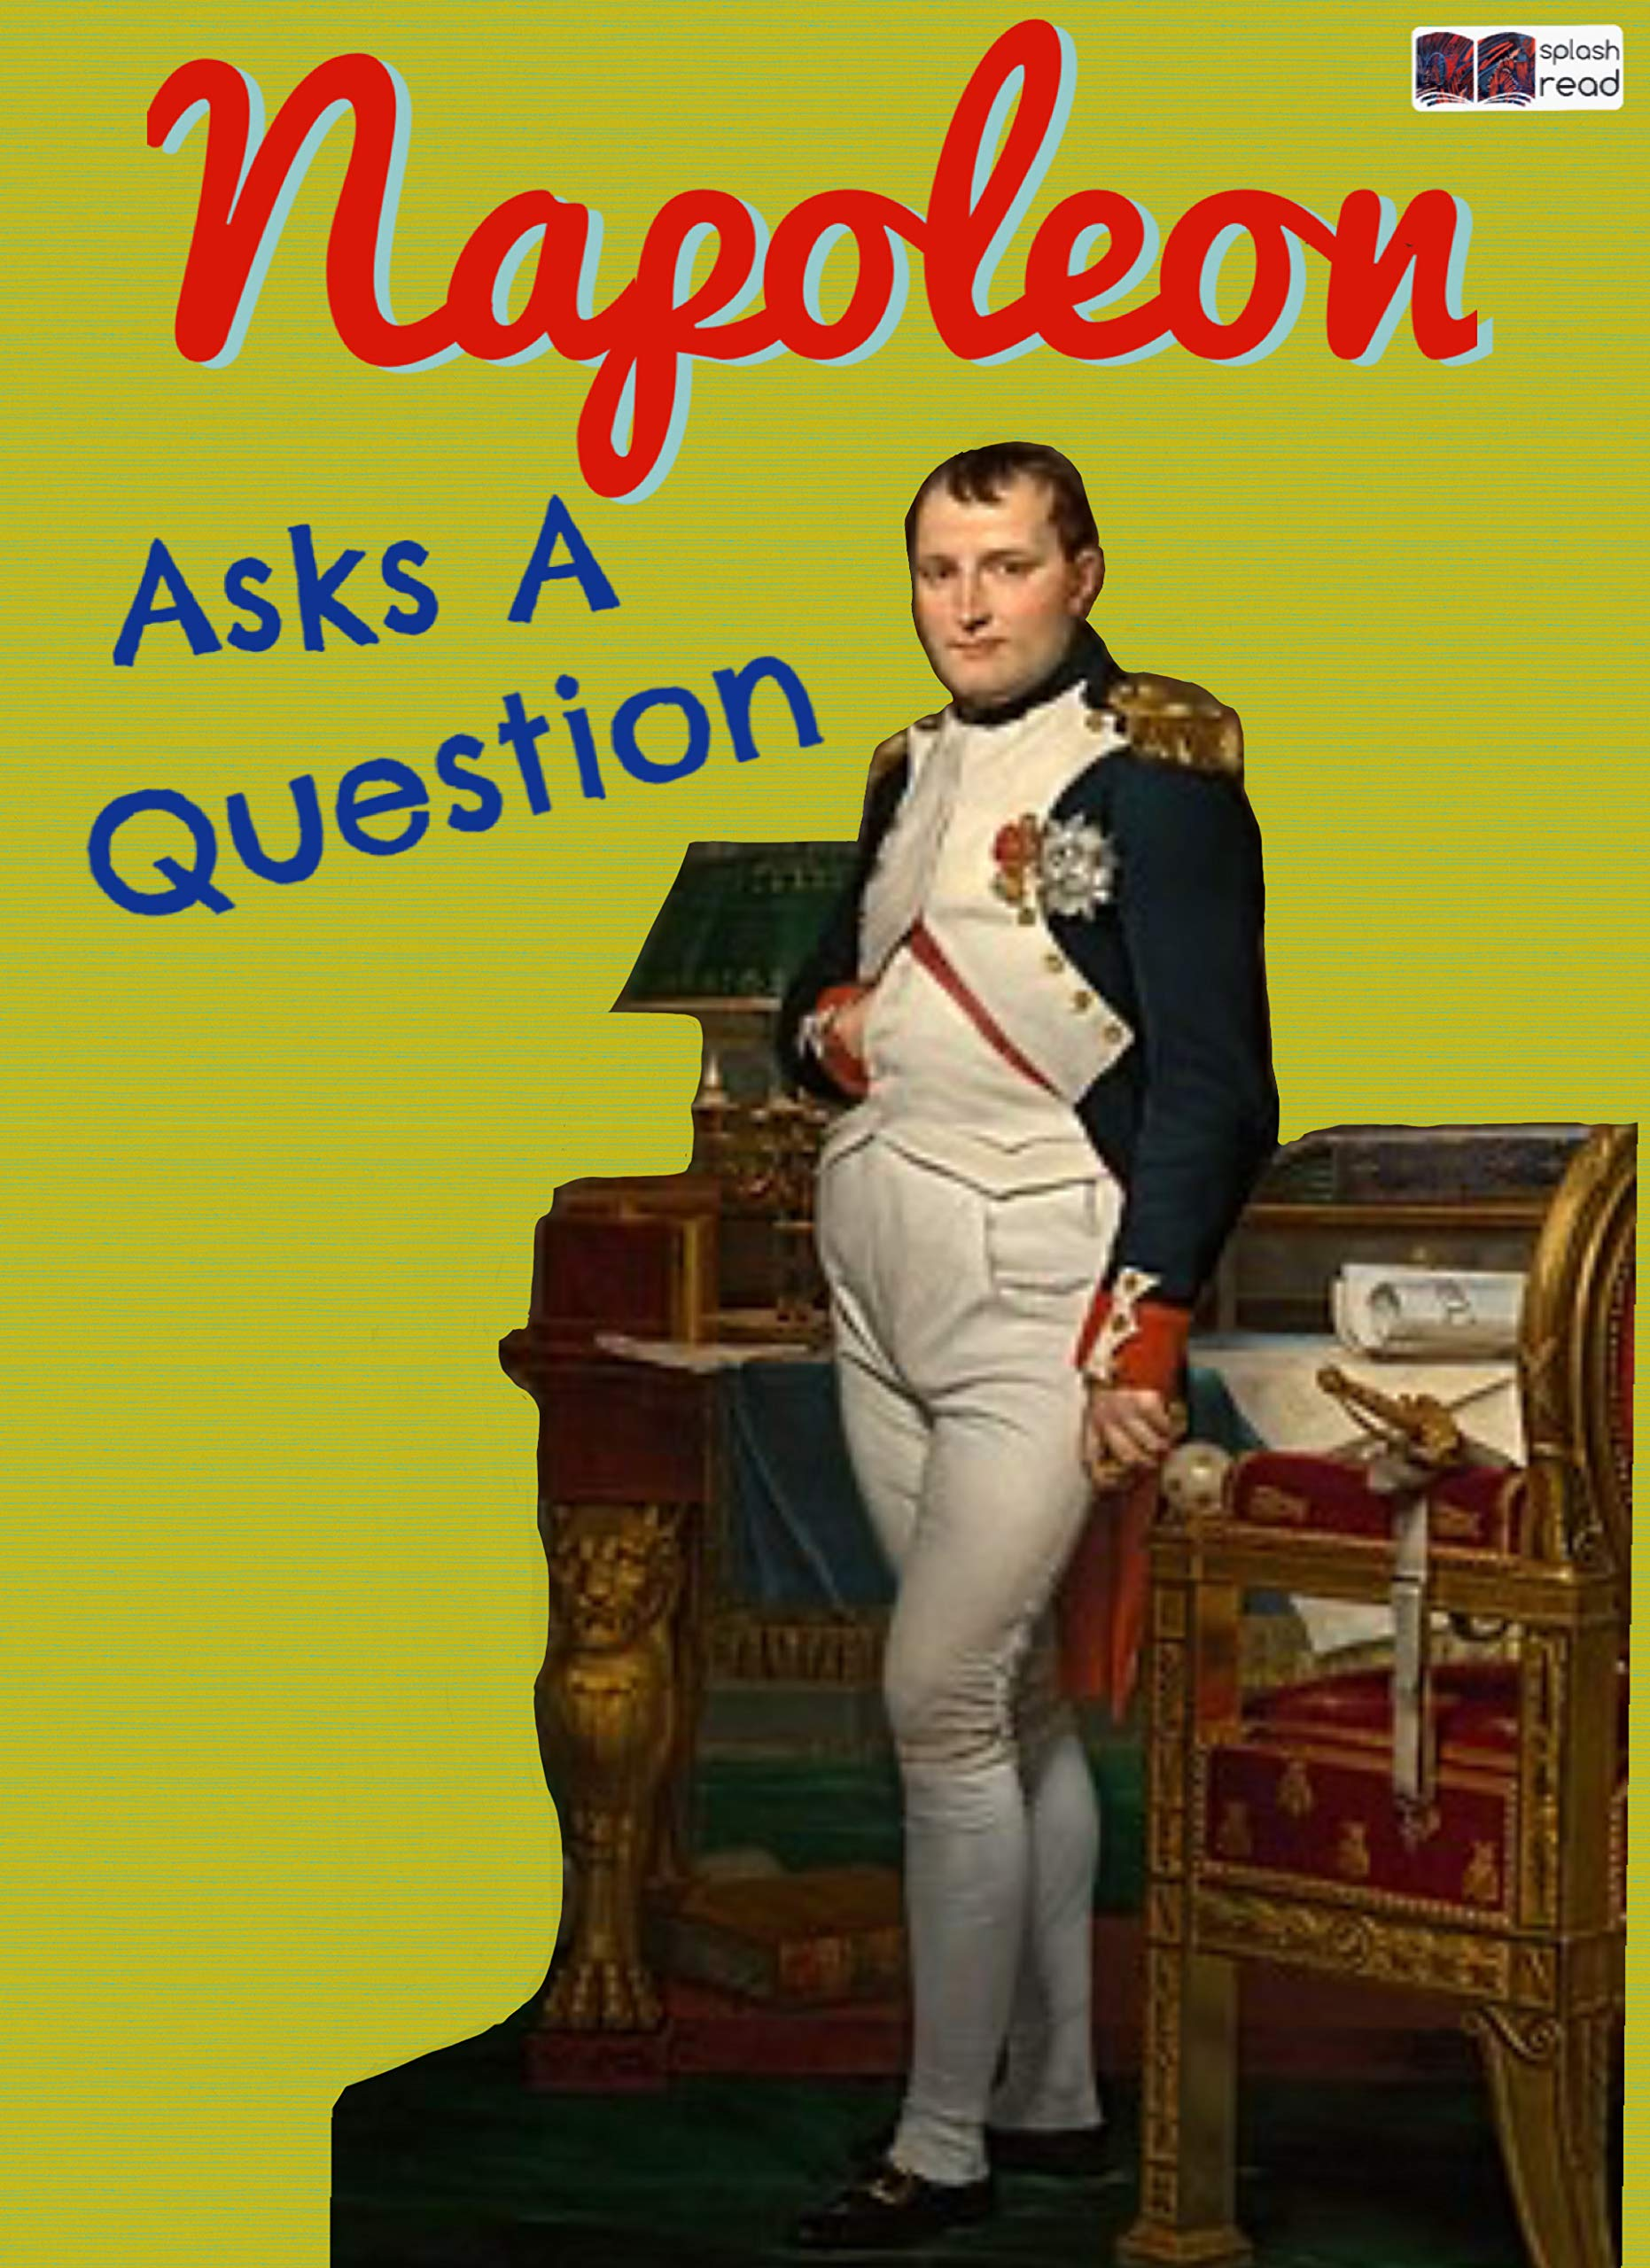 Napoleon Asks a Question: A Historical Fiction Short Story for Kids